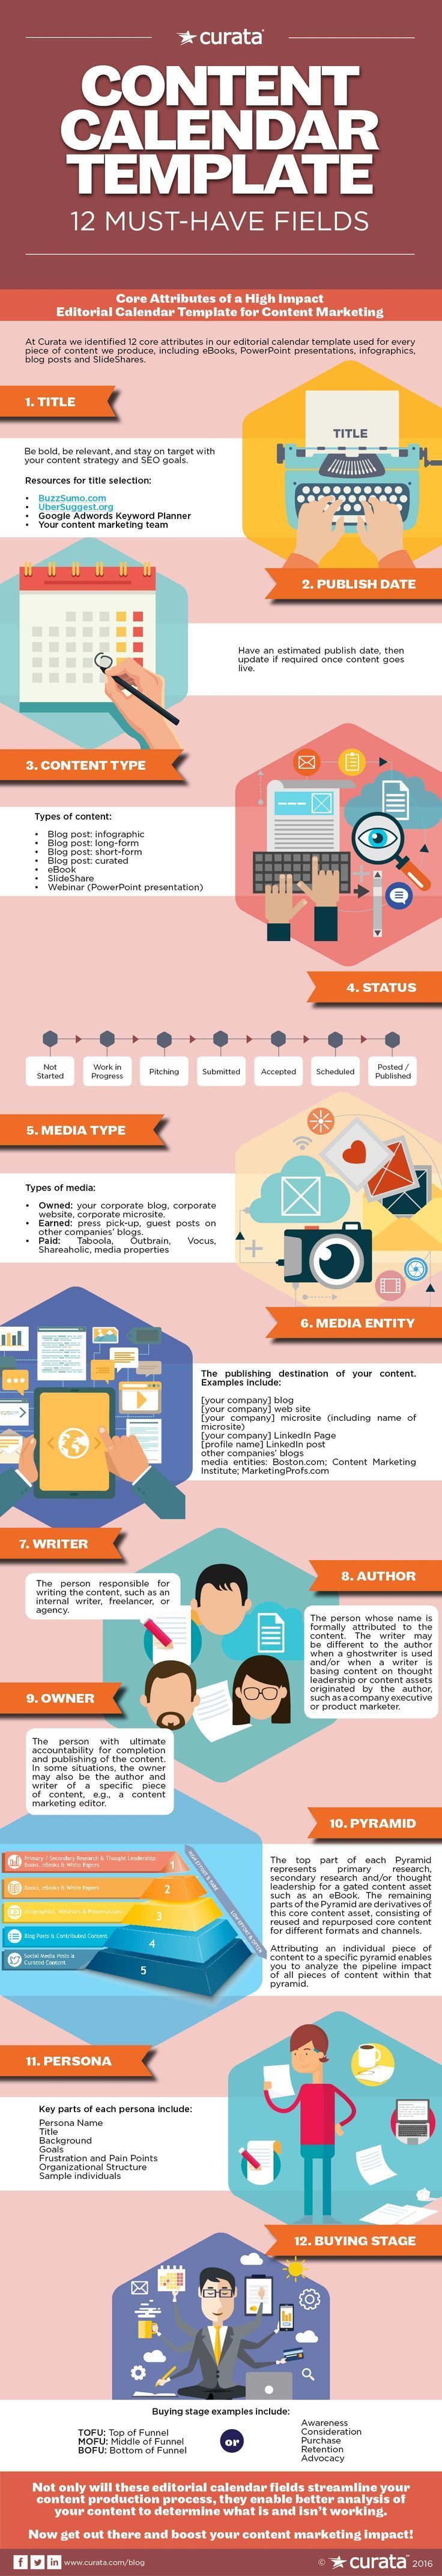 Content Marketing Calendar Template: 12 Must Have Fields [Infographic]